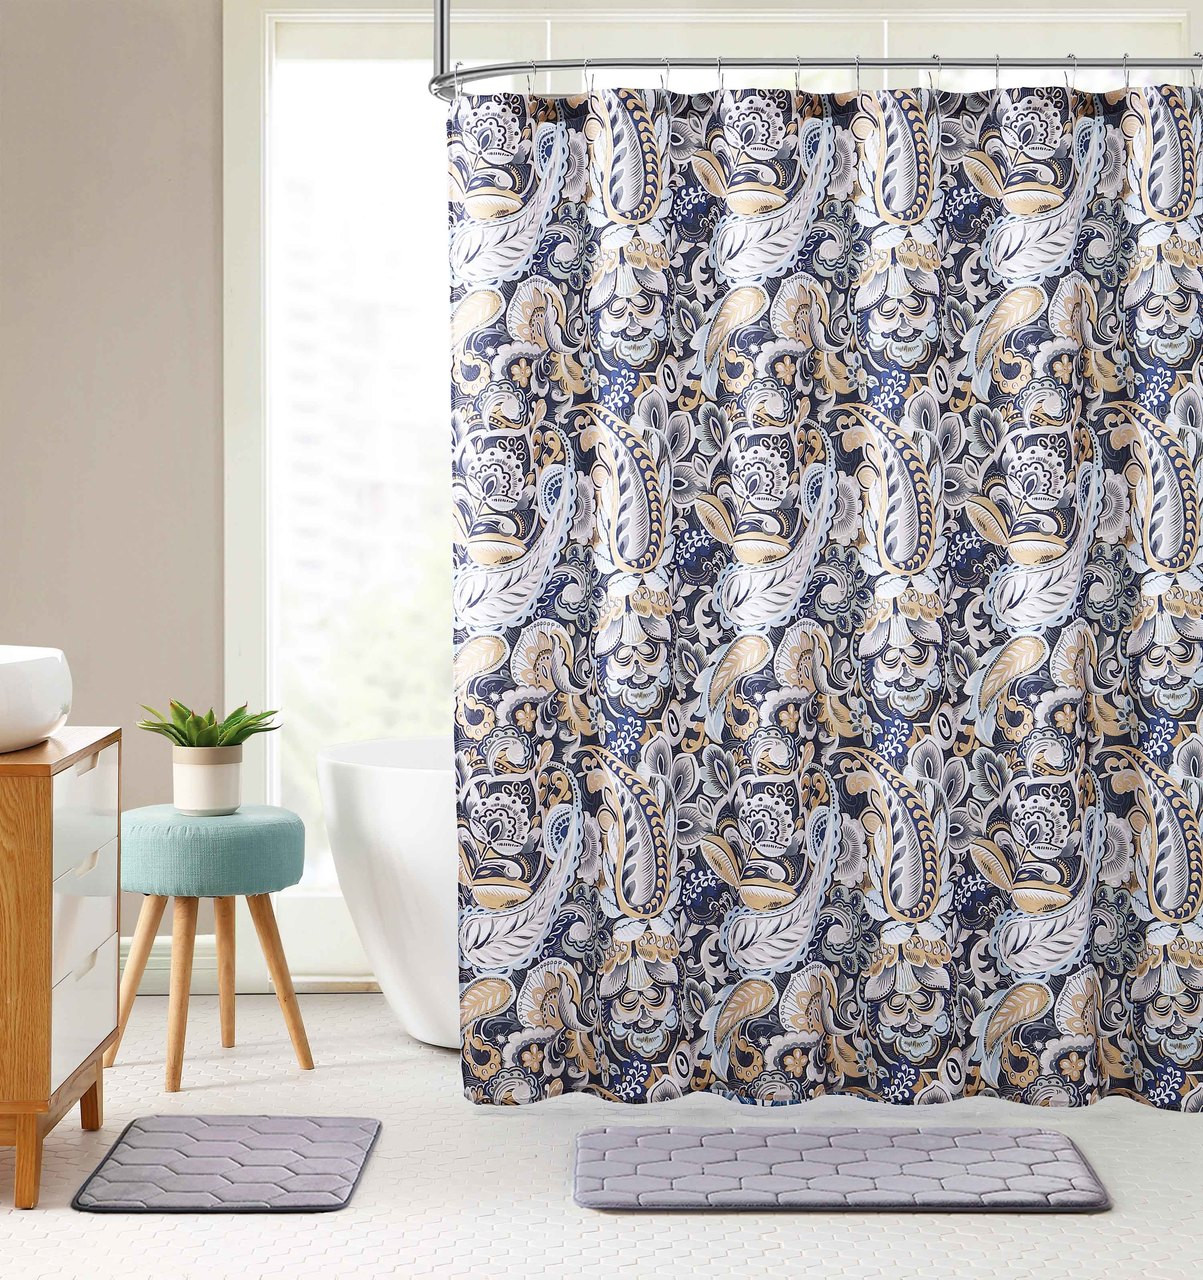 Watercolor Floral Paisley Decorative Navy Blue Gold Fabric Shower Curtain